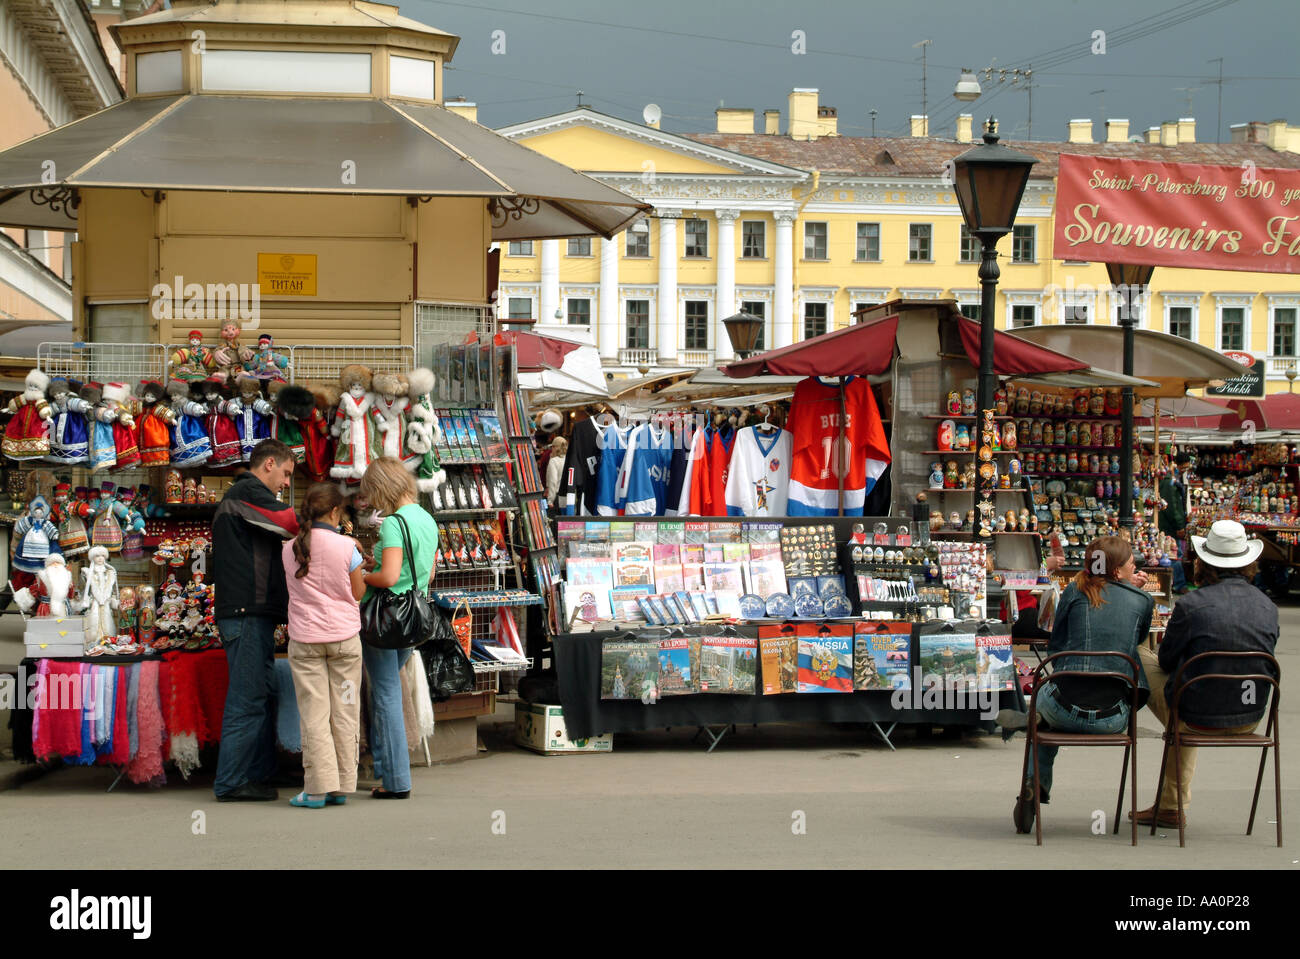 Souvenir sales stalls in St Petersburg Russia - Stock Image